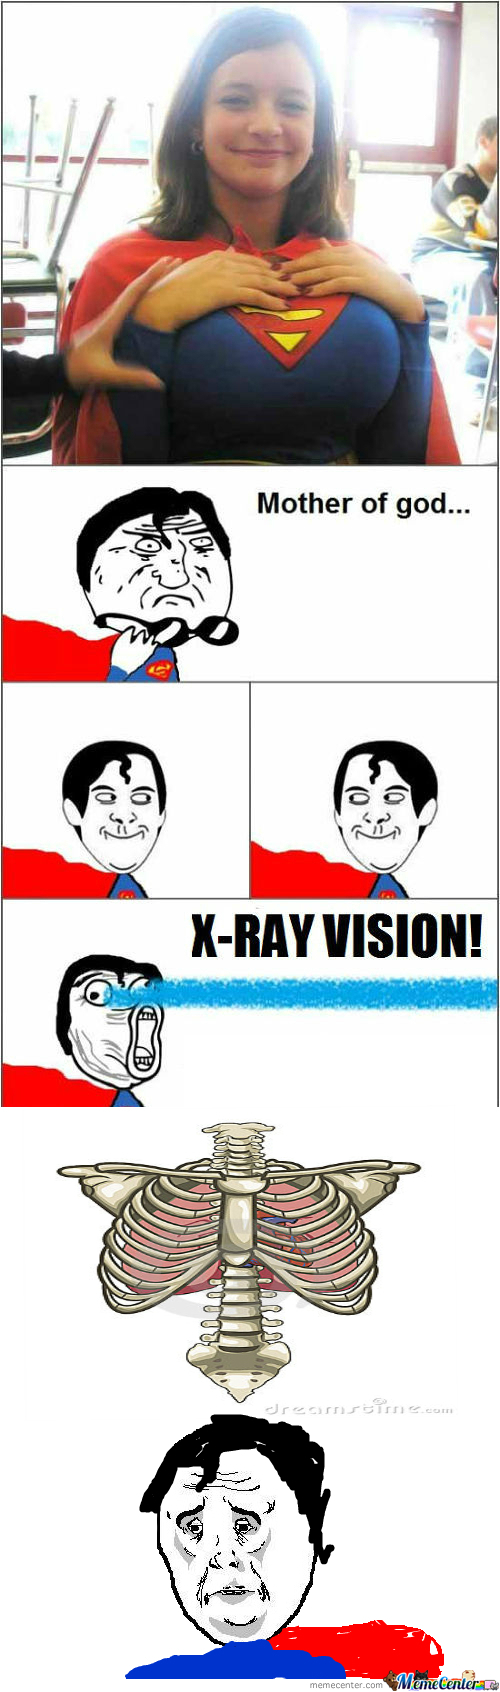 Your superpower xray vision